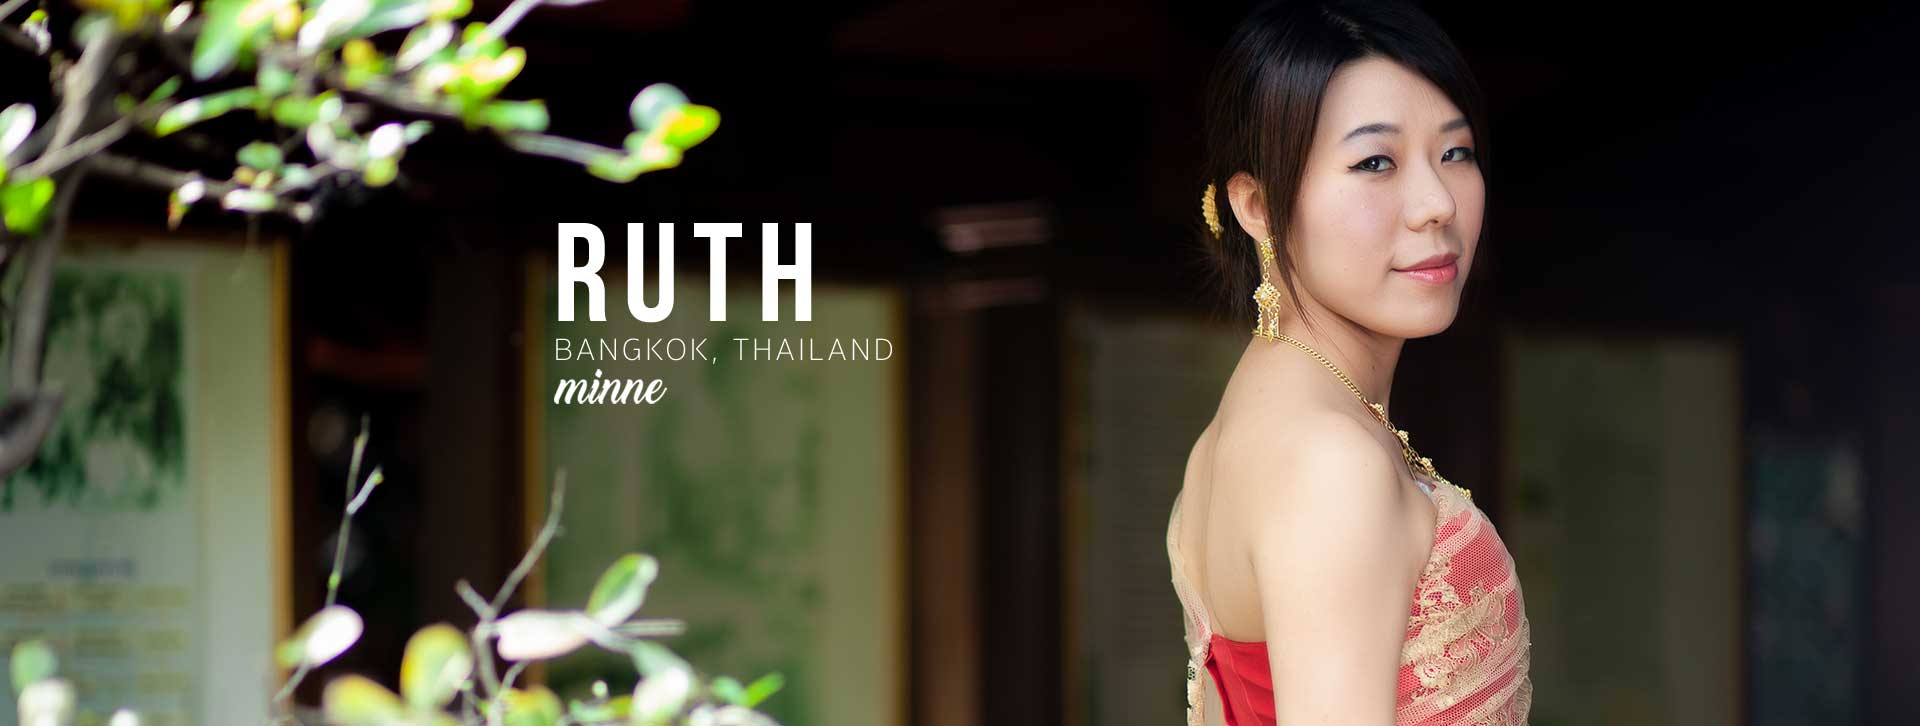 taiwan girl in thai traditional costume long cover